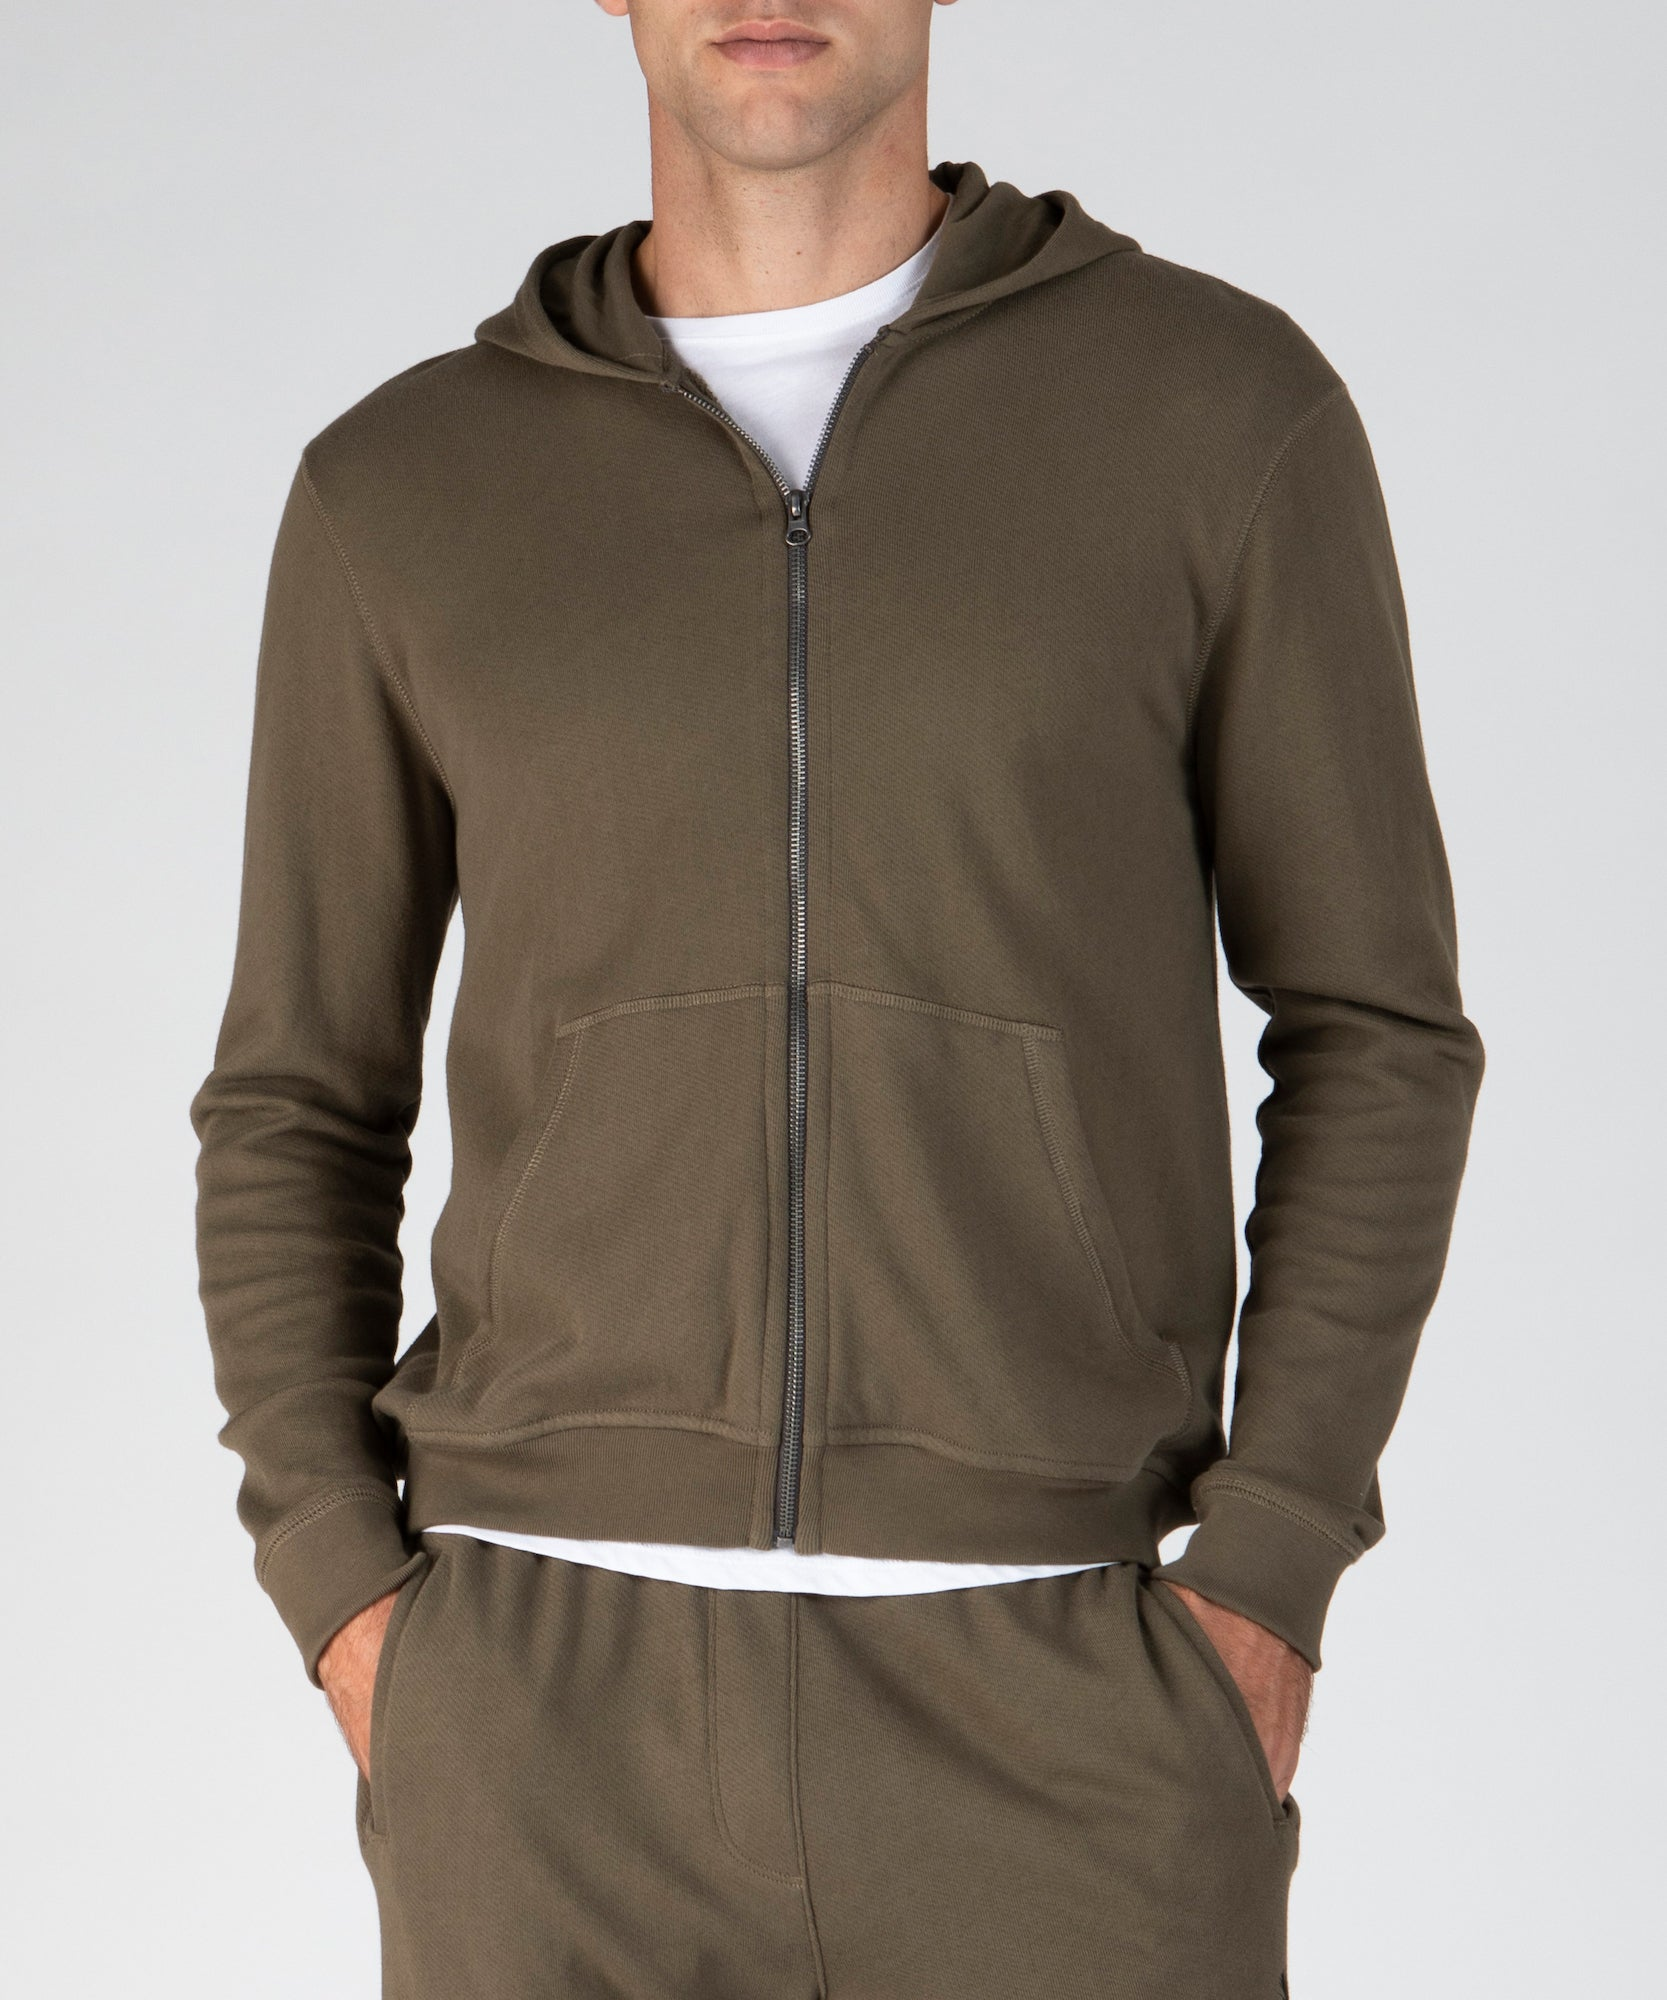 Army French Terry Palm Print Zip-Up Hoodie - Men's Luxe Loungewear by ATM Anthony Thomas Melillo